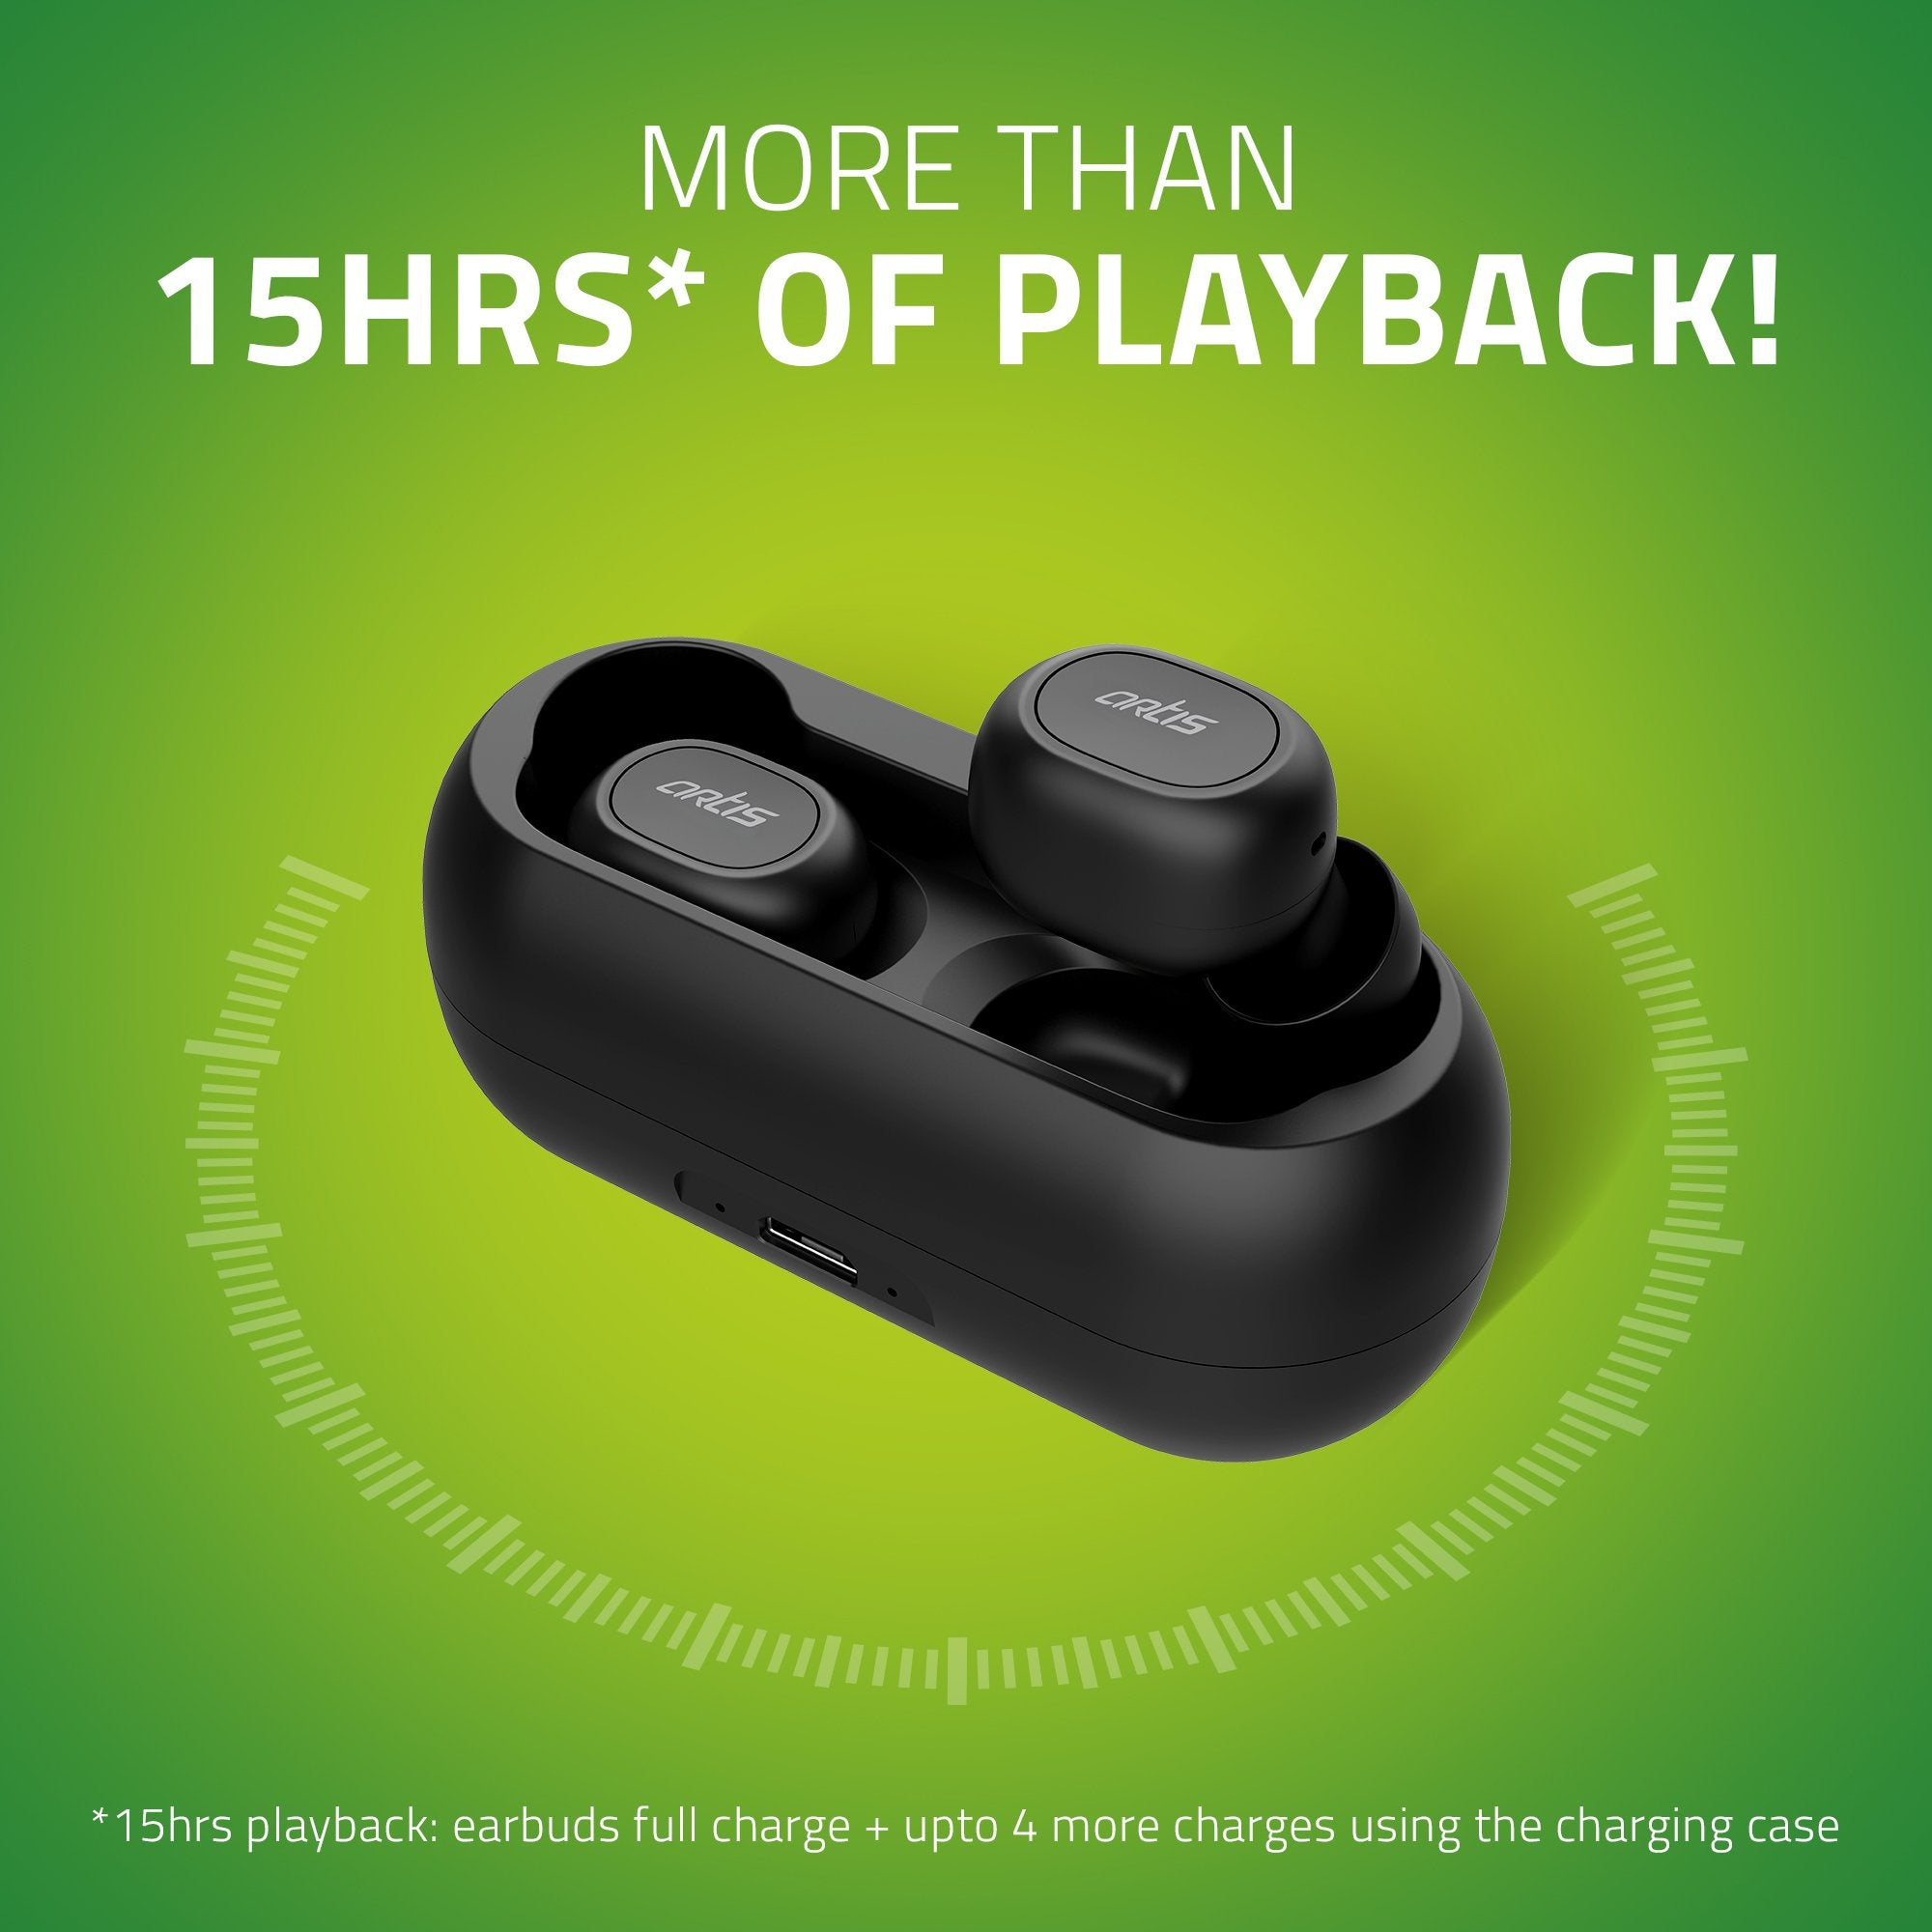 Artis BE810M TWS Earbuds - 15 hrs Payback